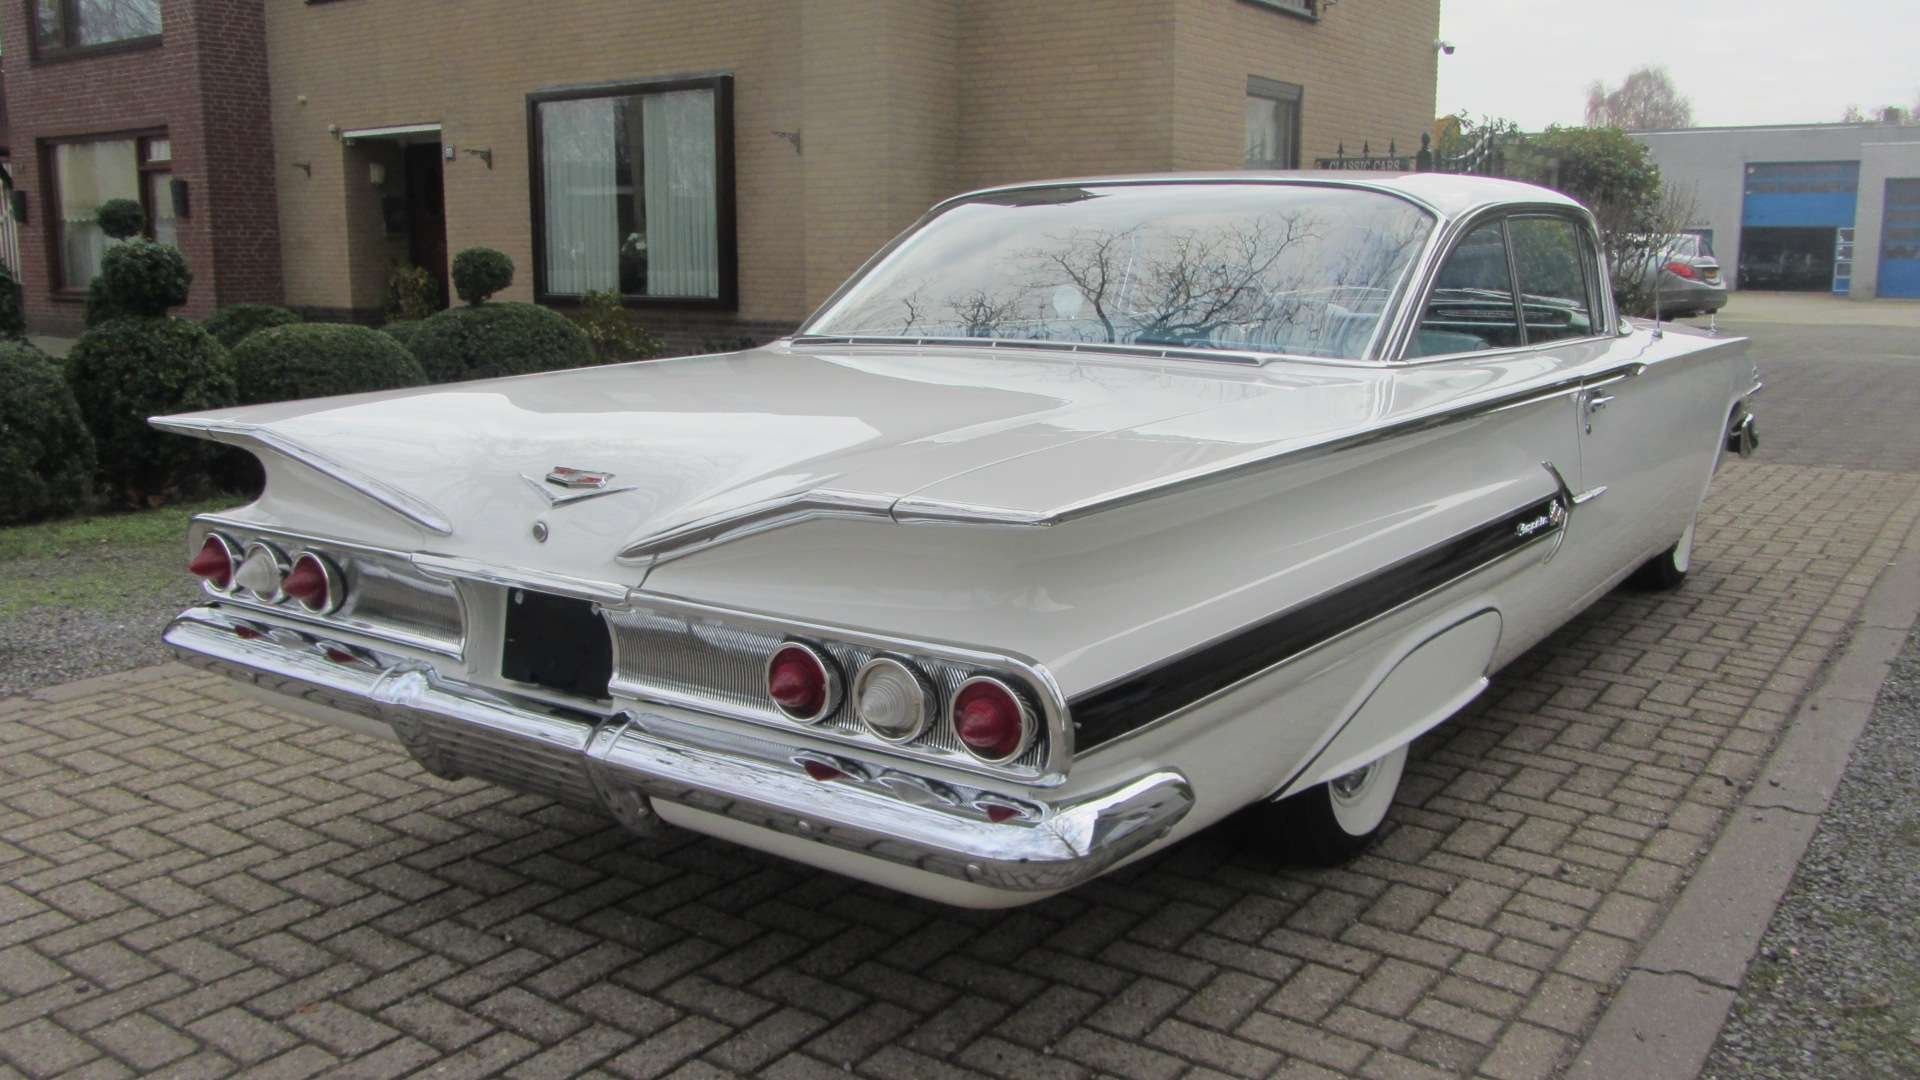 Chevrolet impala Coupe 1960 New Car & 50 USA Classics For Sale (picture 4 of 6)